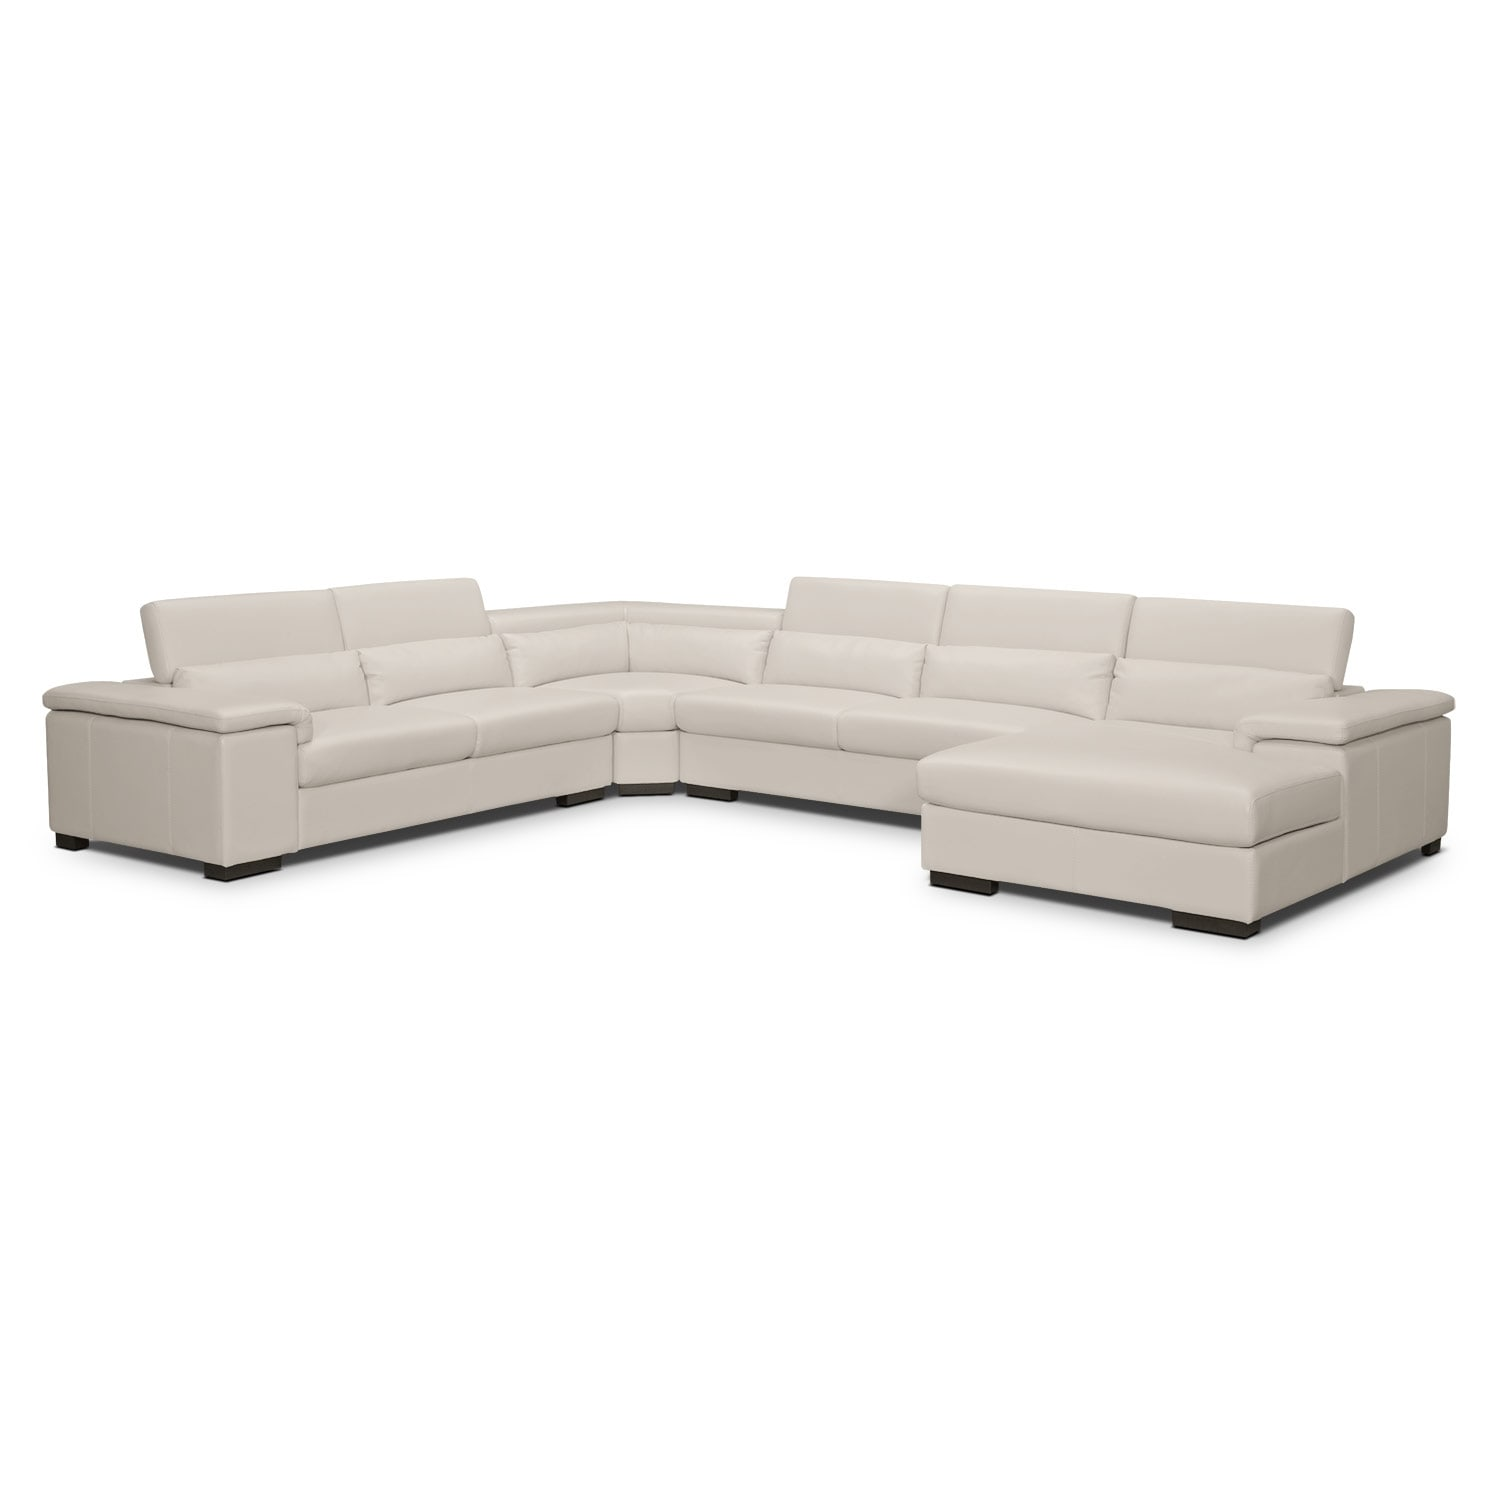 Value City Furniture : 278615 from valuecity.com size 1500 x 1500 jpeg 88kB